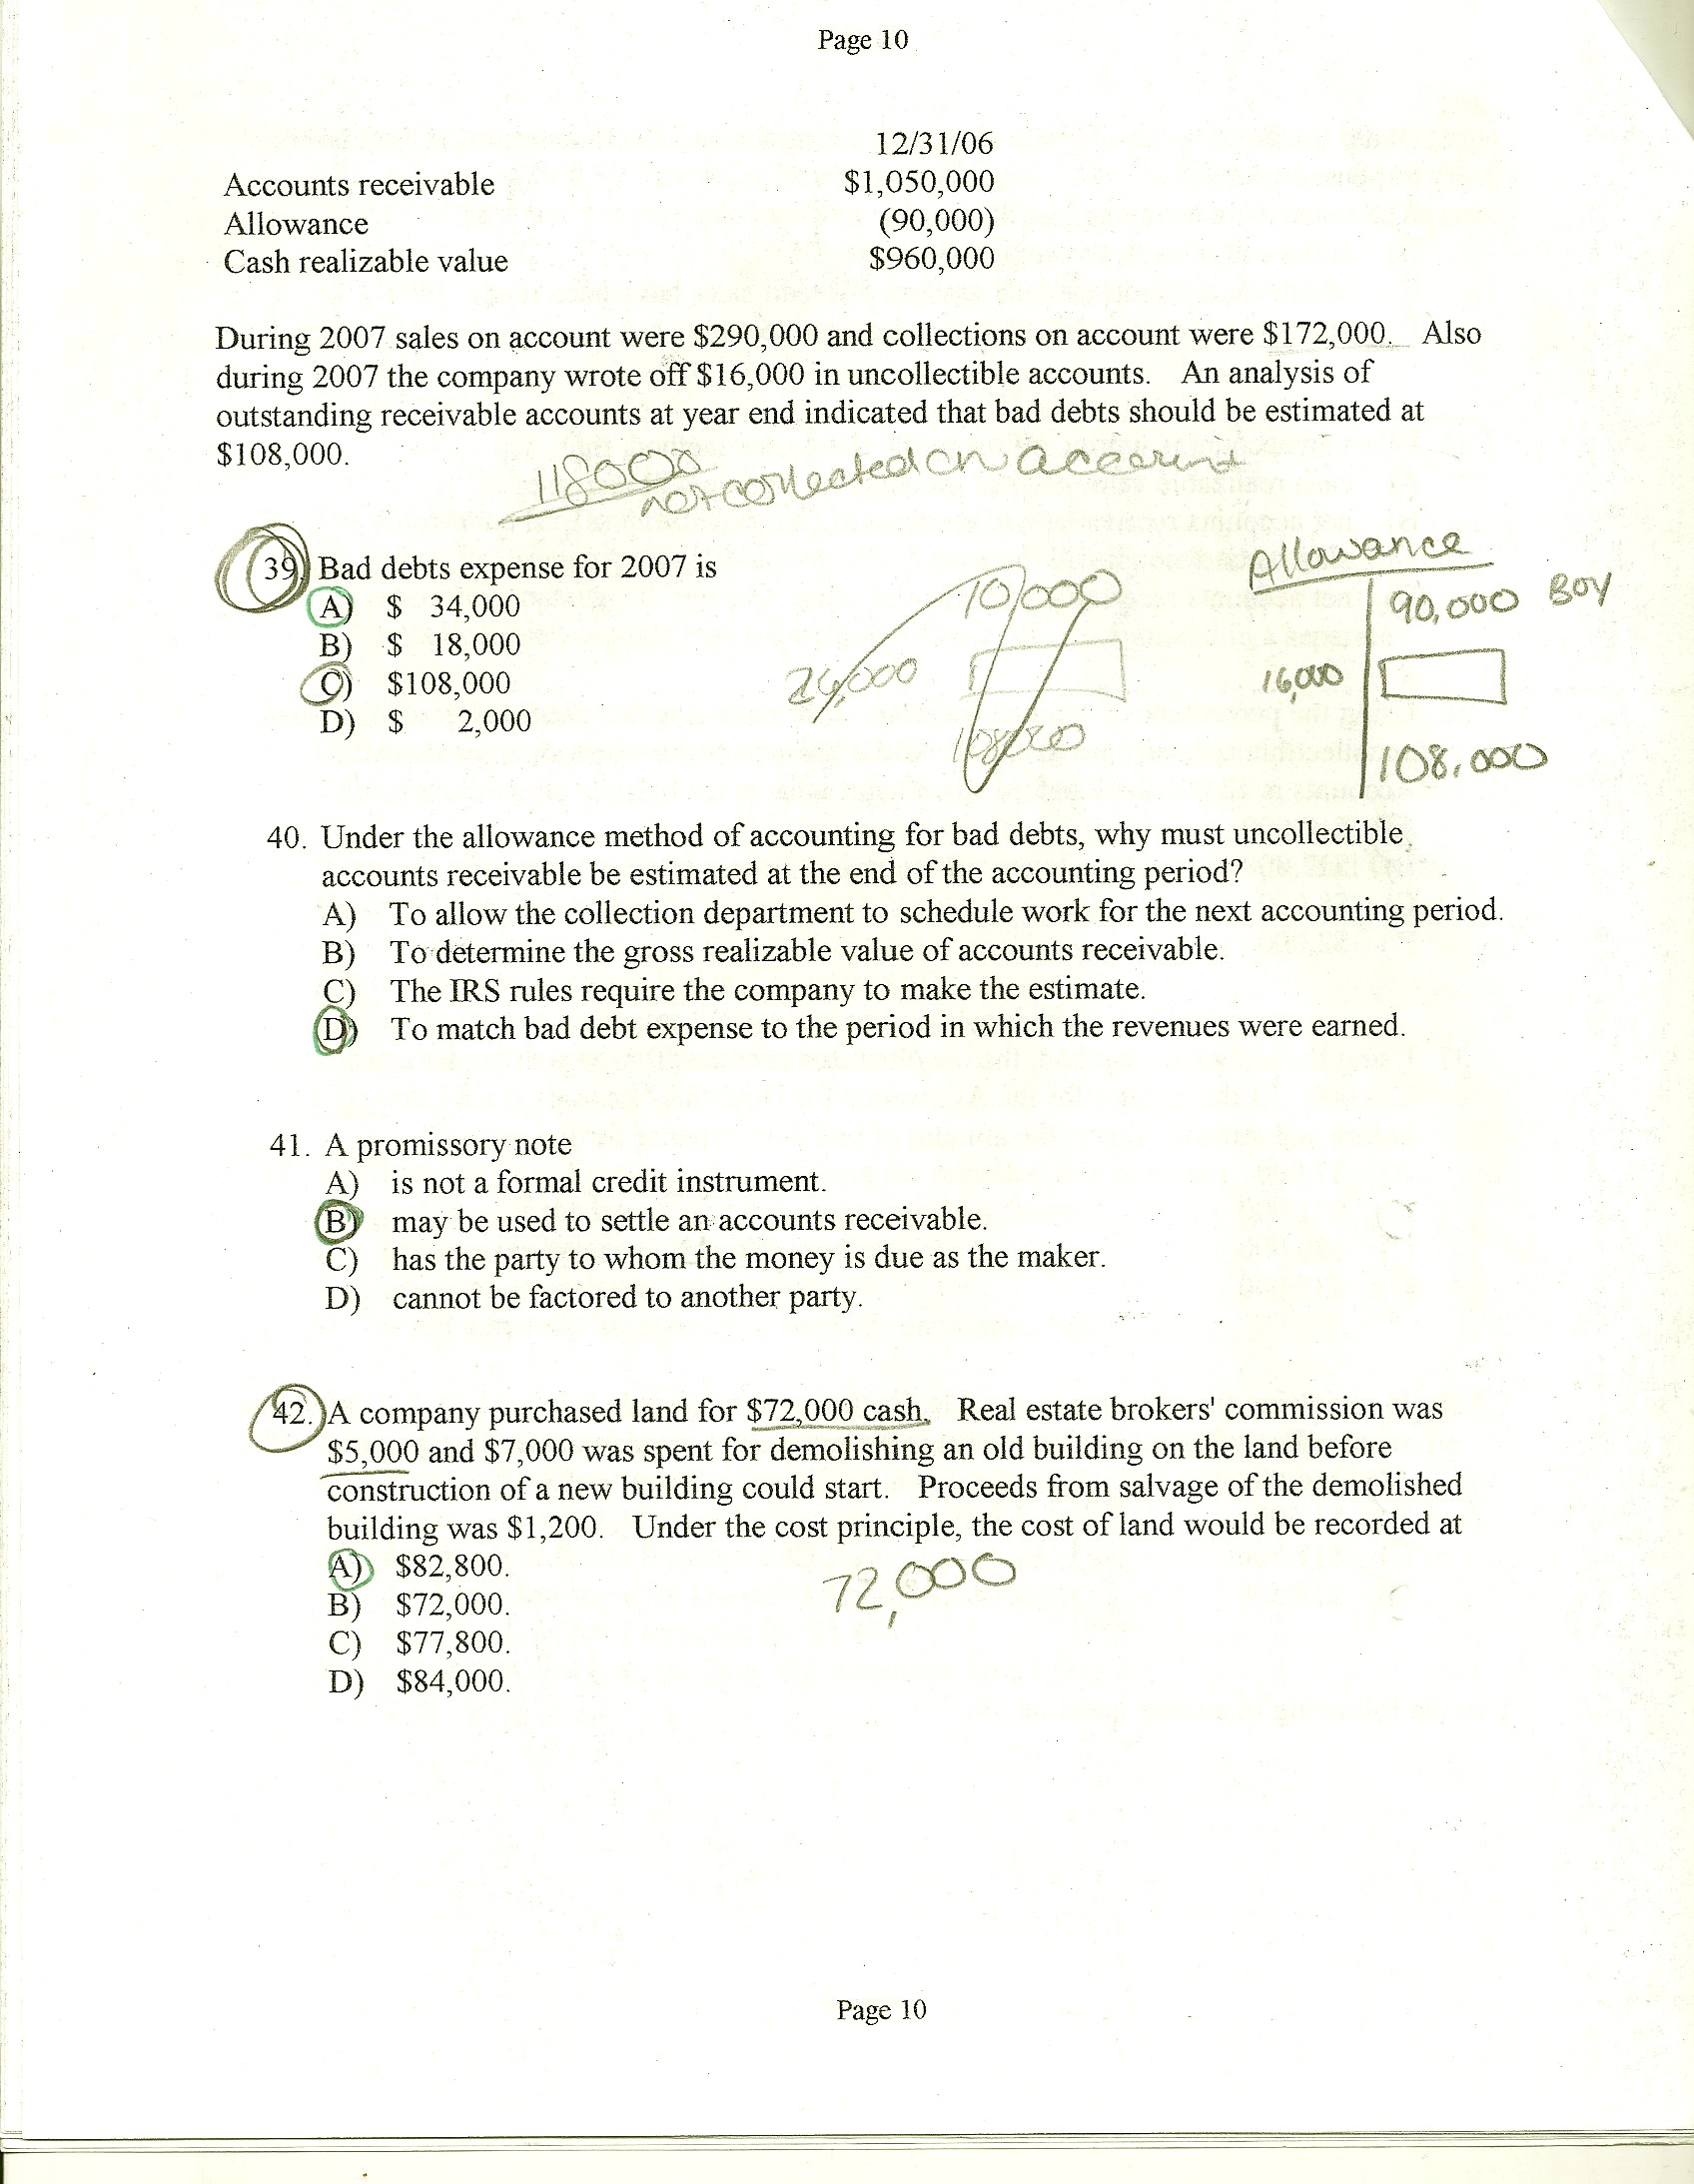 Test 2 Page 10